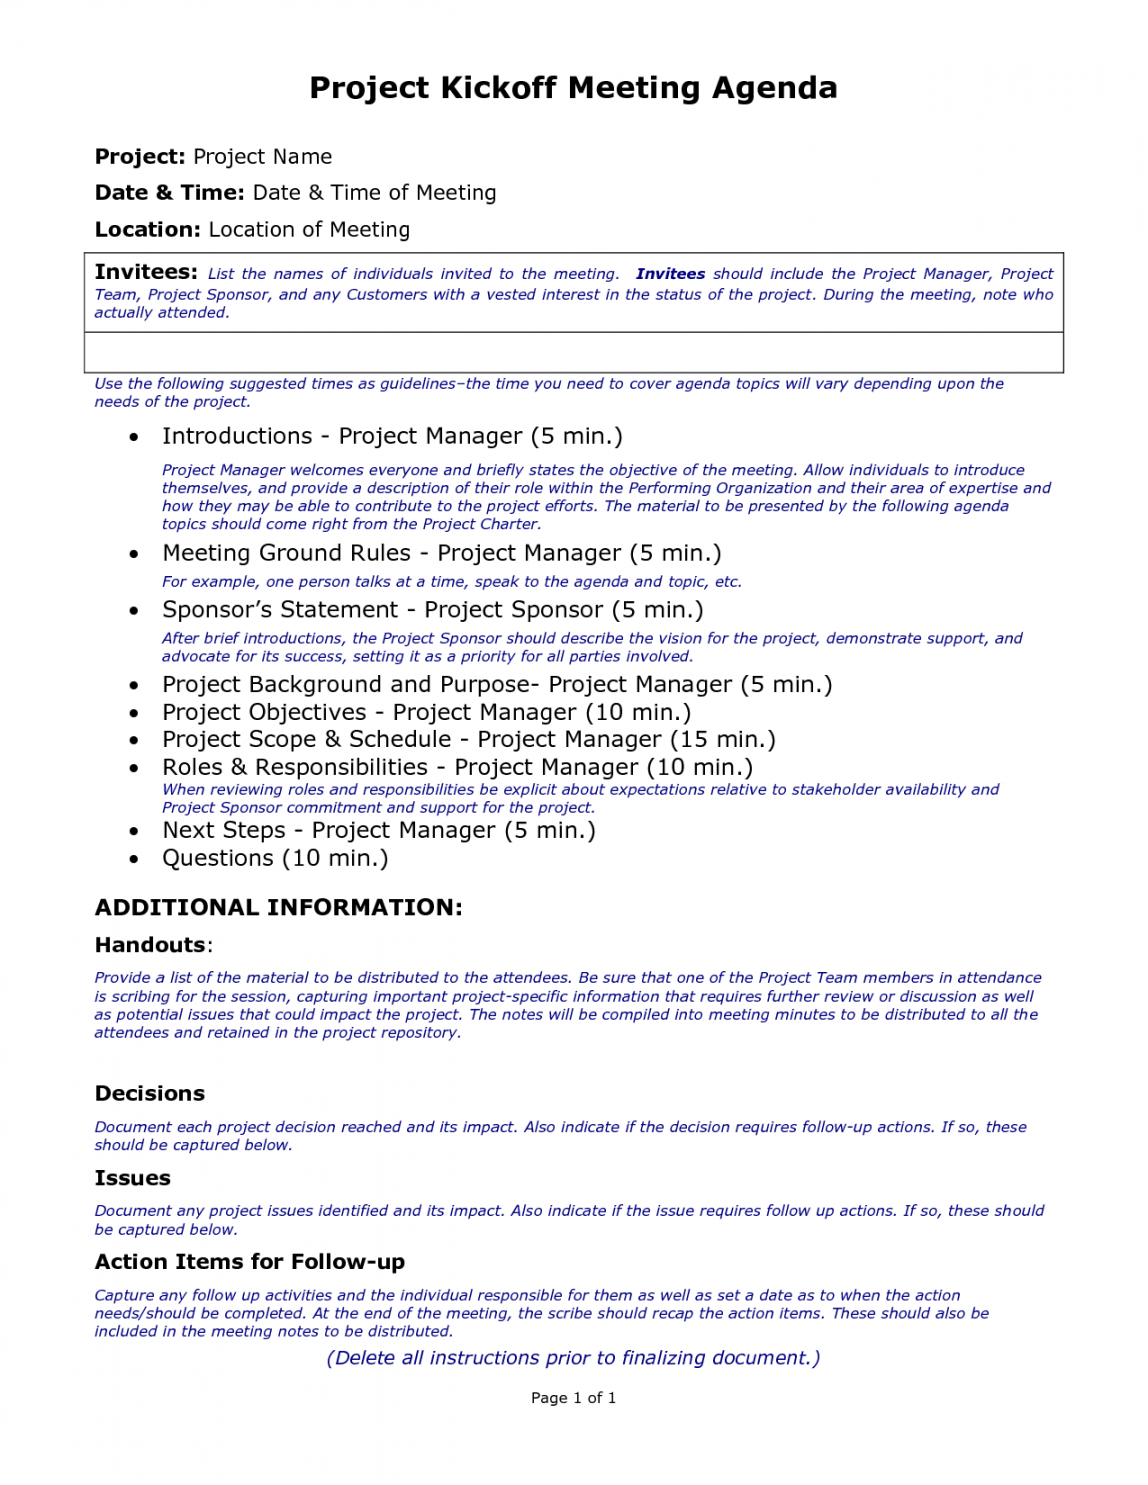 Construction Kickoff Meeting Agenda Template This Is Why Construction Kick Off Meeting Agenda Template PDF